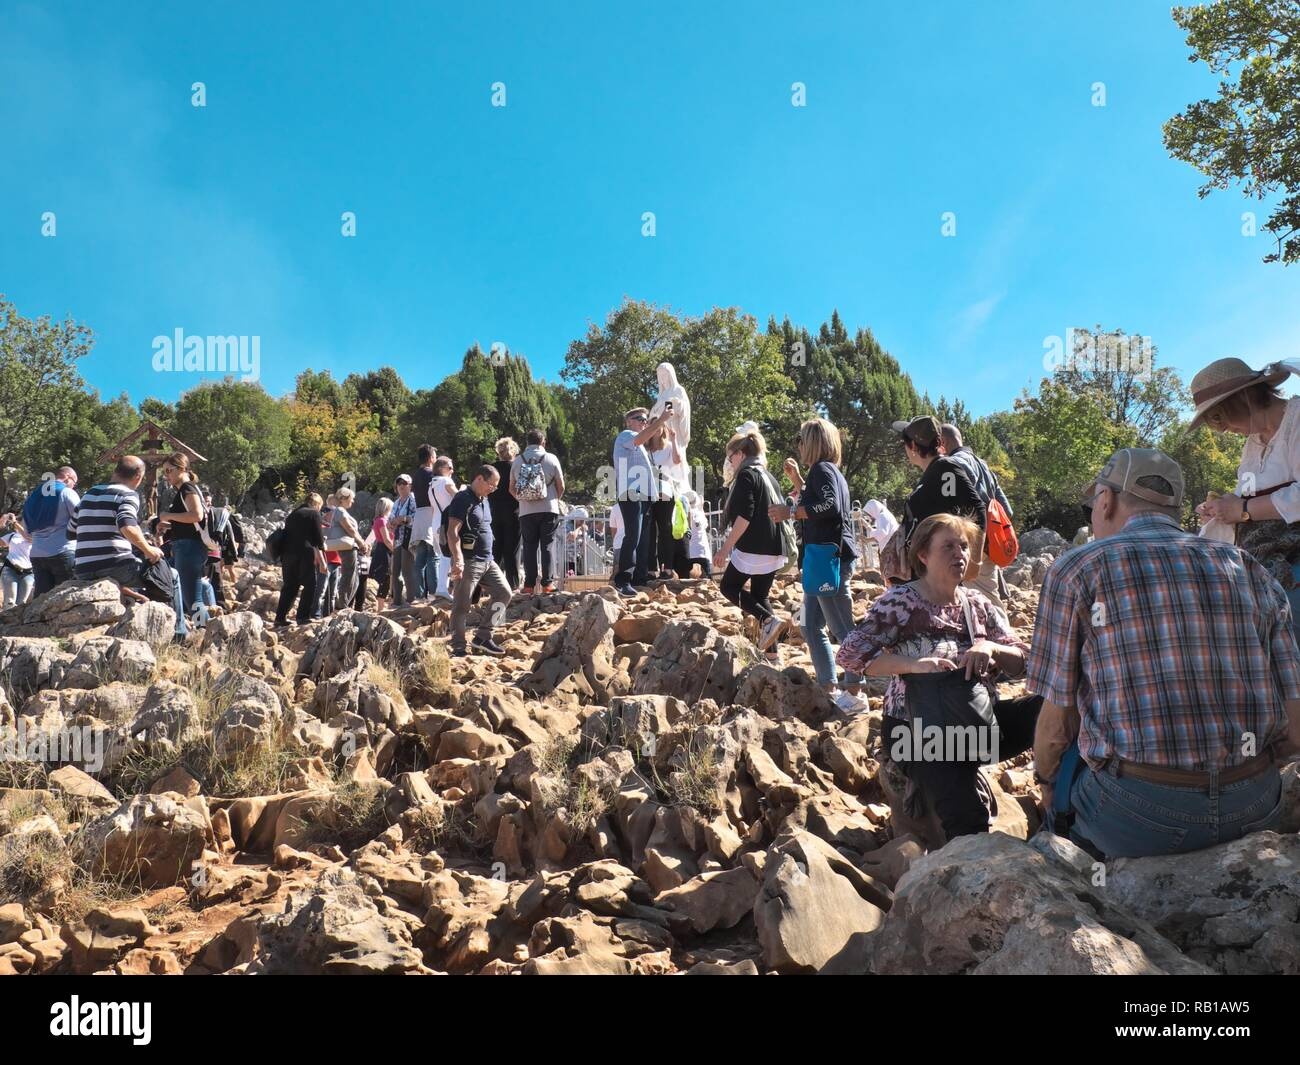 View of the Virgin Mary on Apparition Hill in Bosnia & Herzegovina  during a bright summer day showing lots of people praying Stock Photo